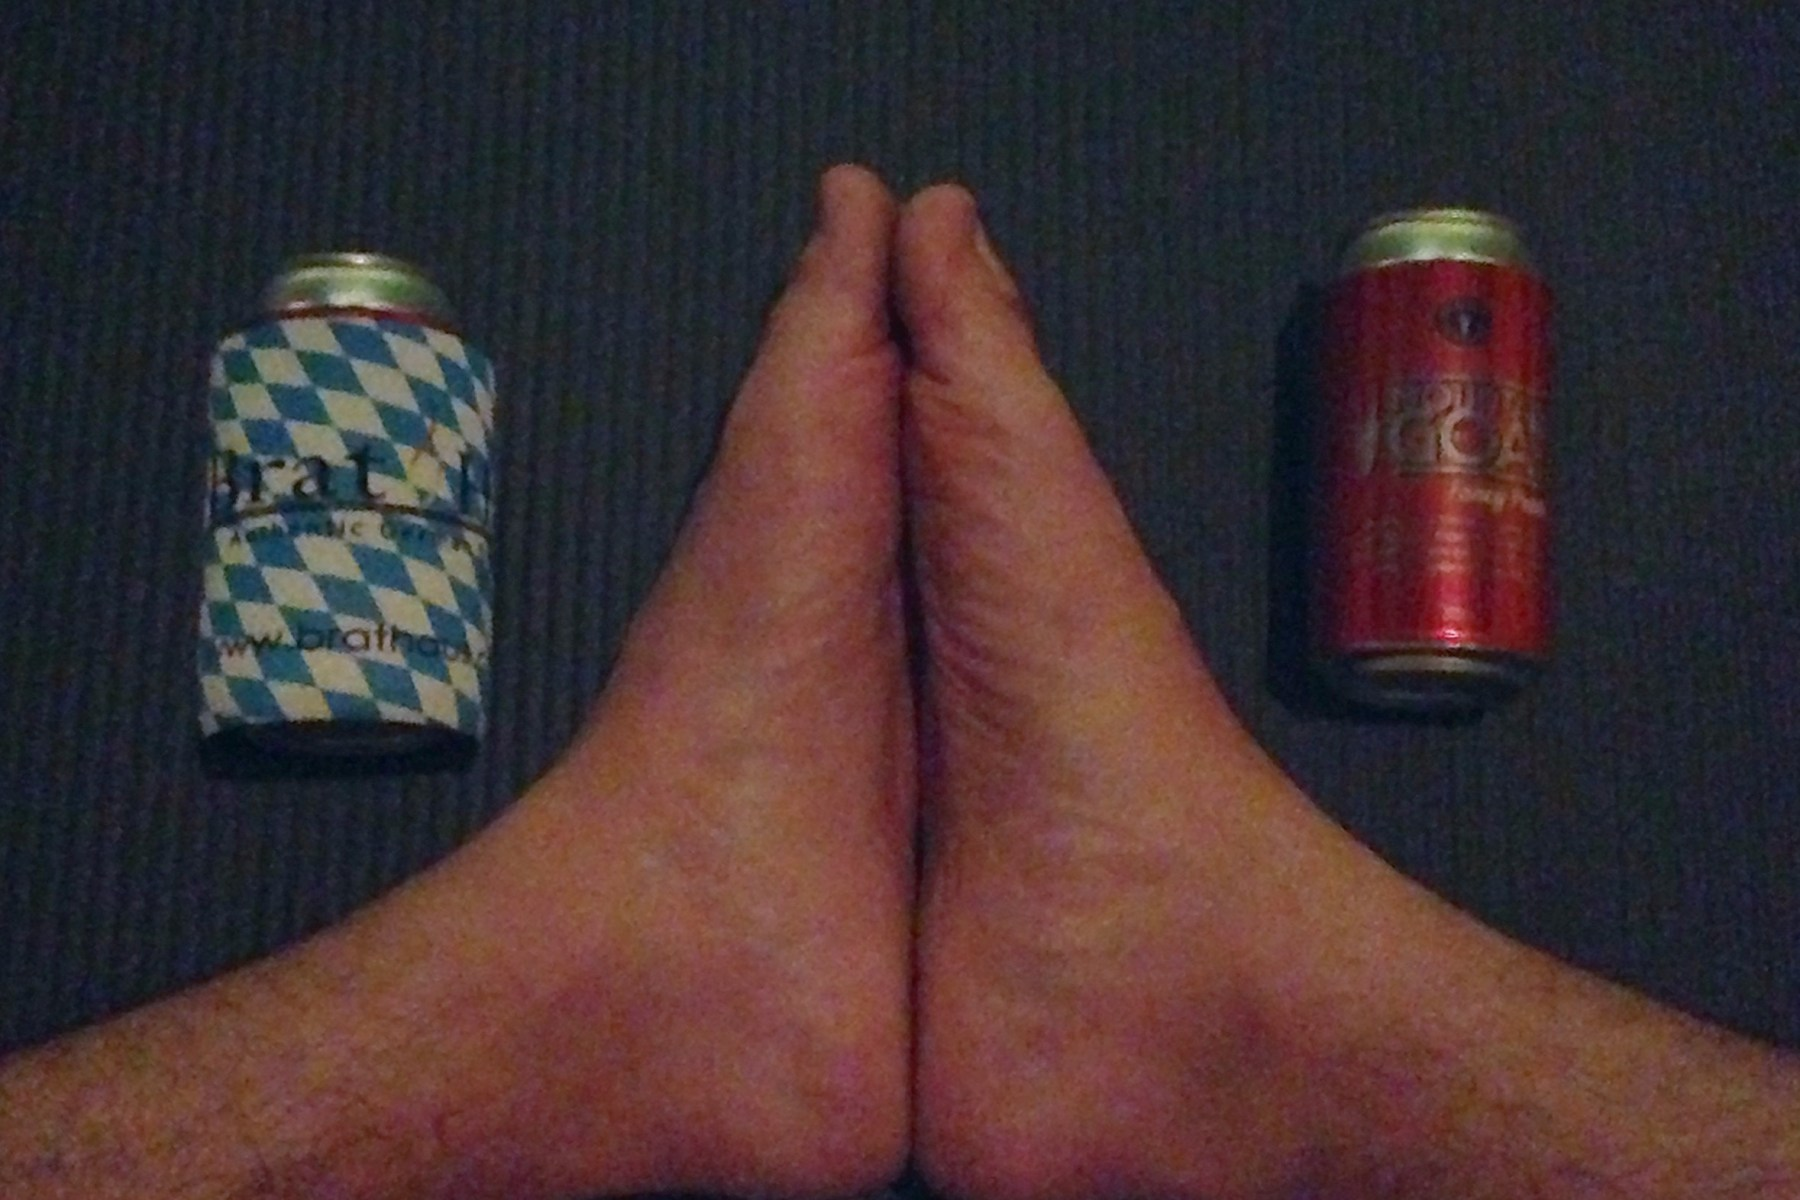 Yoga feet and yoga beer